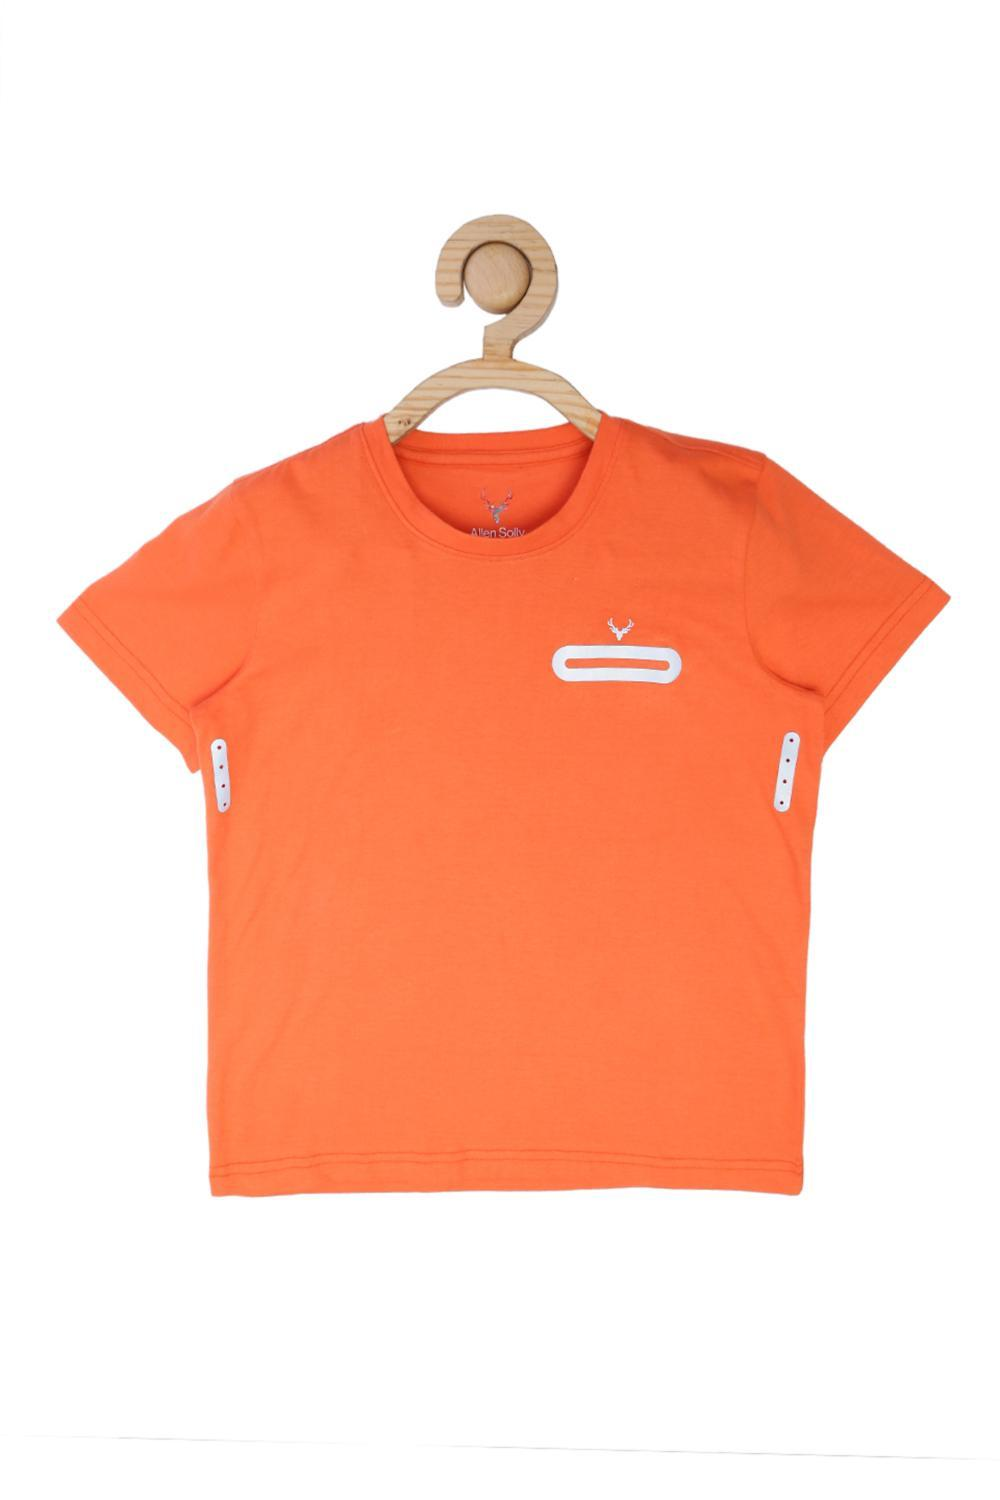 c3f6c7be4 Allen Solly Junior Shirts & Tees, Allen Solly Orange T Shirt for Boys at  Allensolly.com